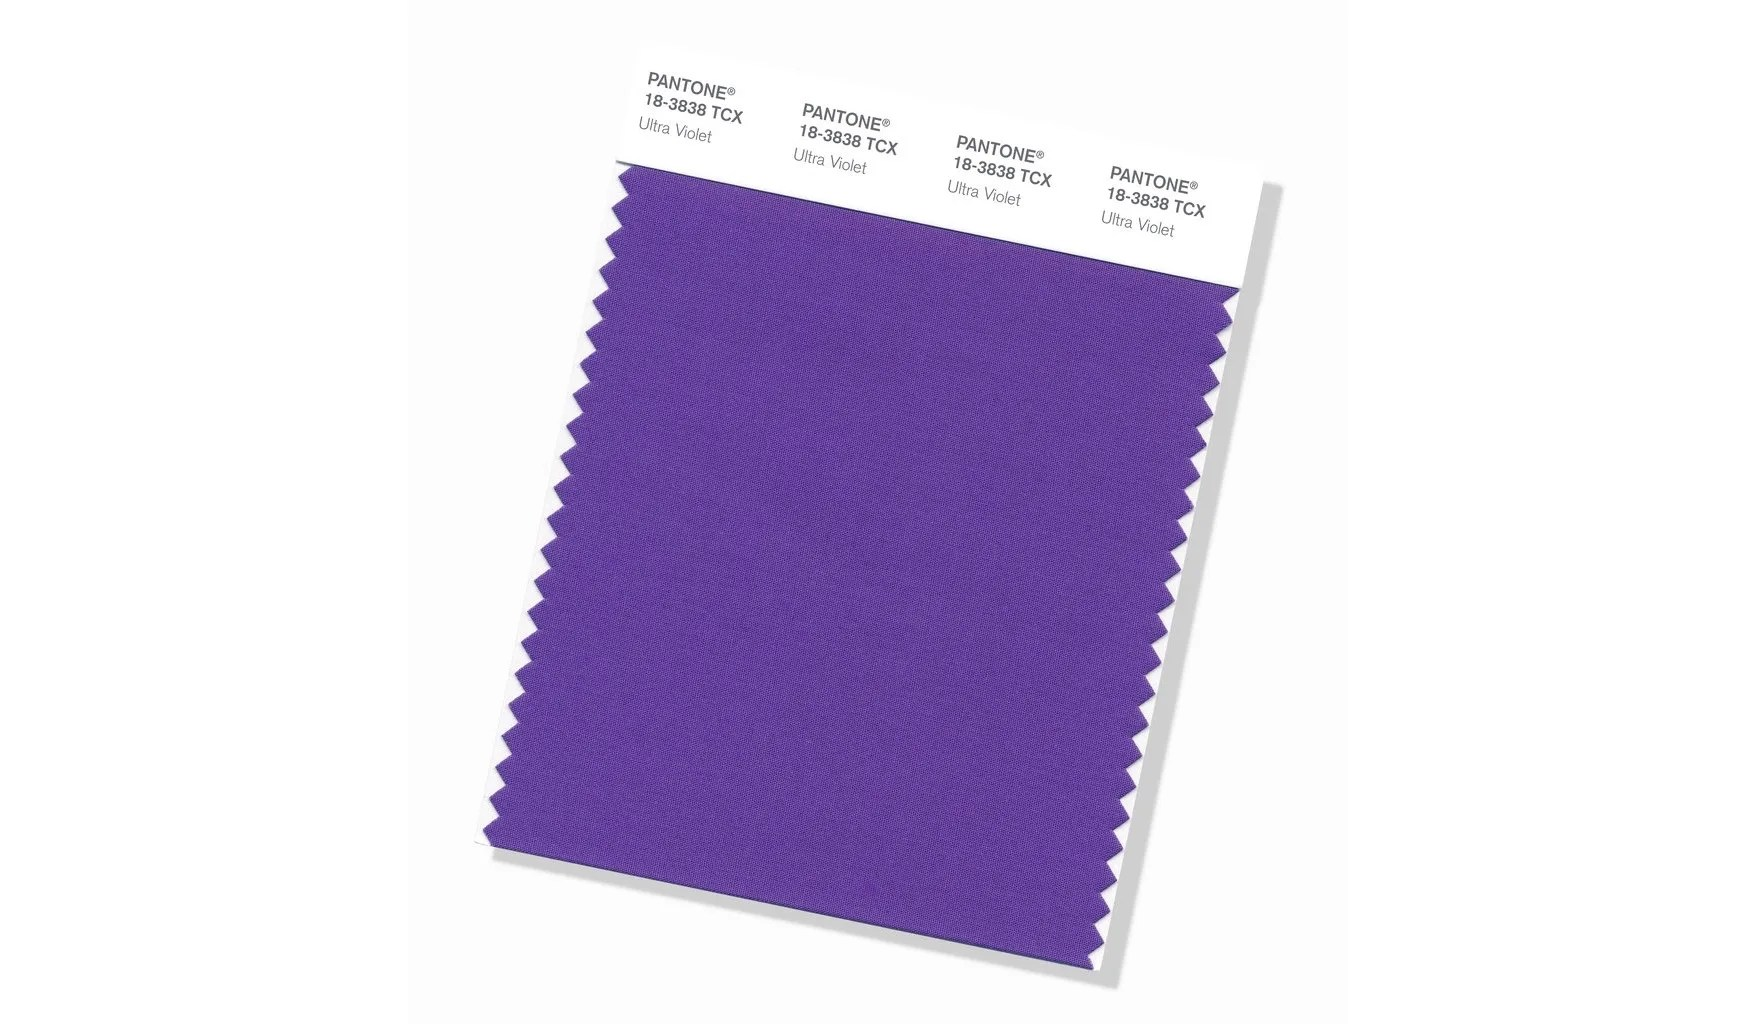 Ultra Violet Pantone Pantone Picks Deep Purple 39ultra Violet 39 As Color Of Year